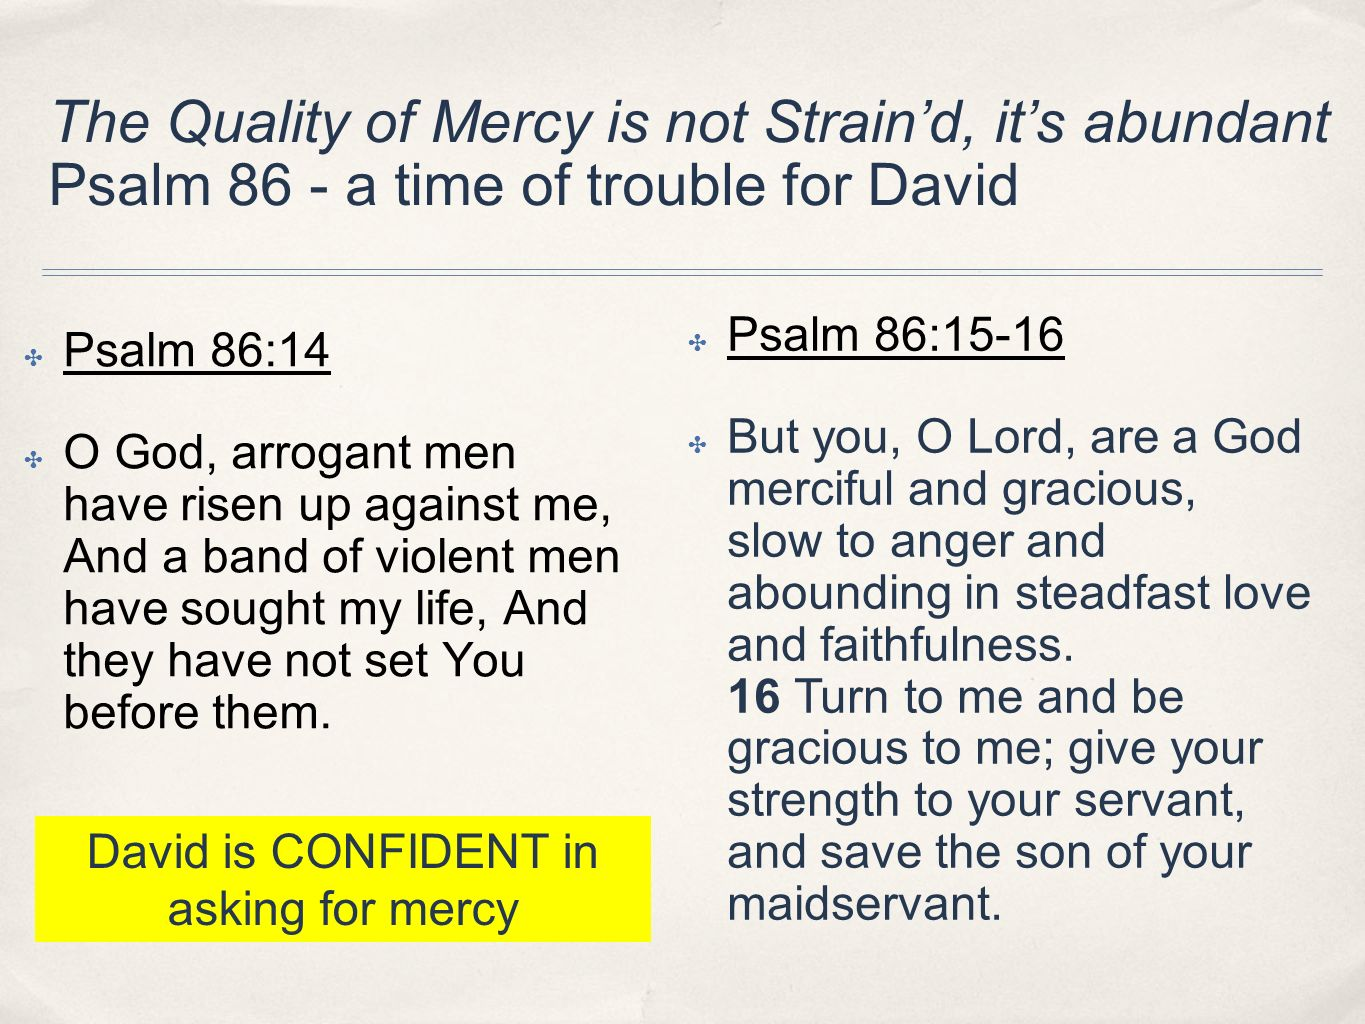 The Quality of Mercy is not Straind, its abundant Psalm 86 - a time of trouble for David Psalm 86:14 O God, arrogant men have risen up against me, And